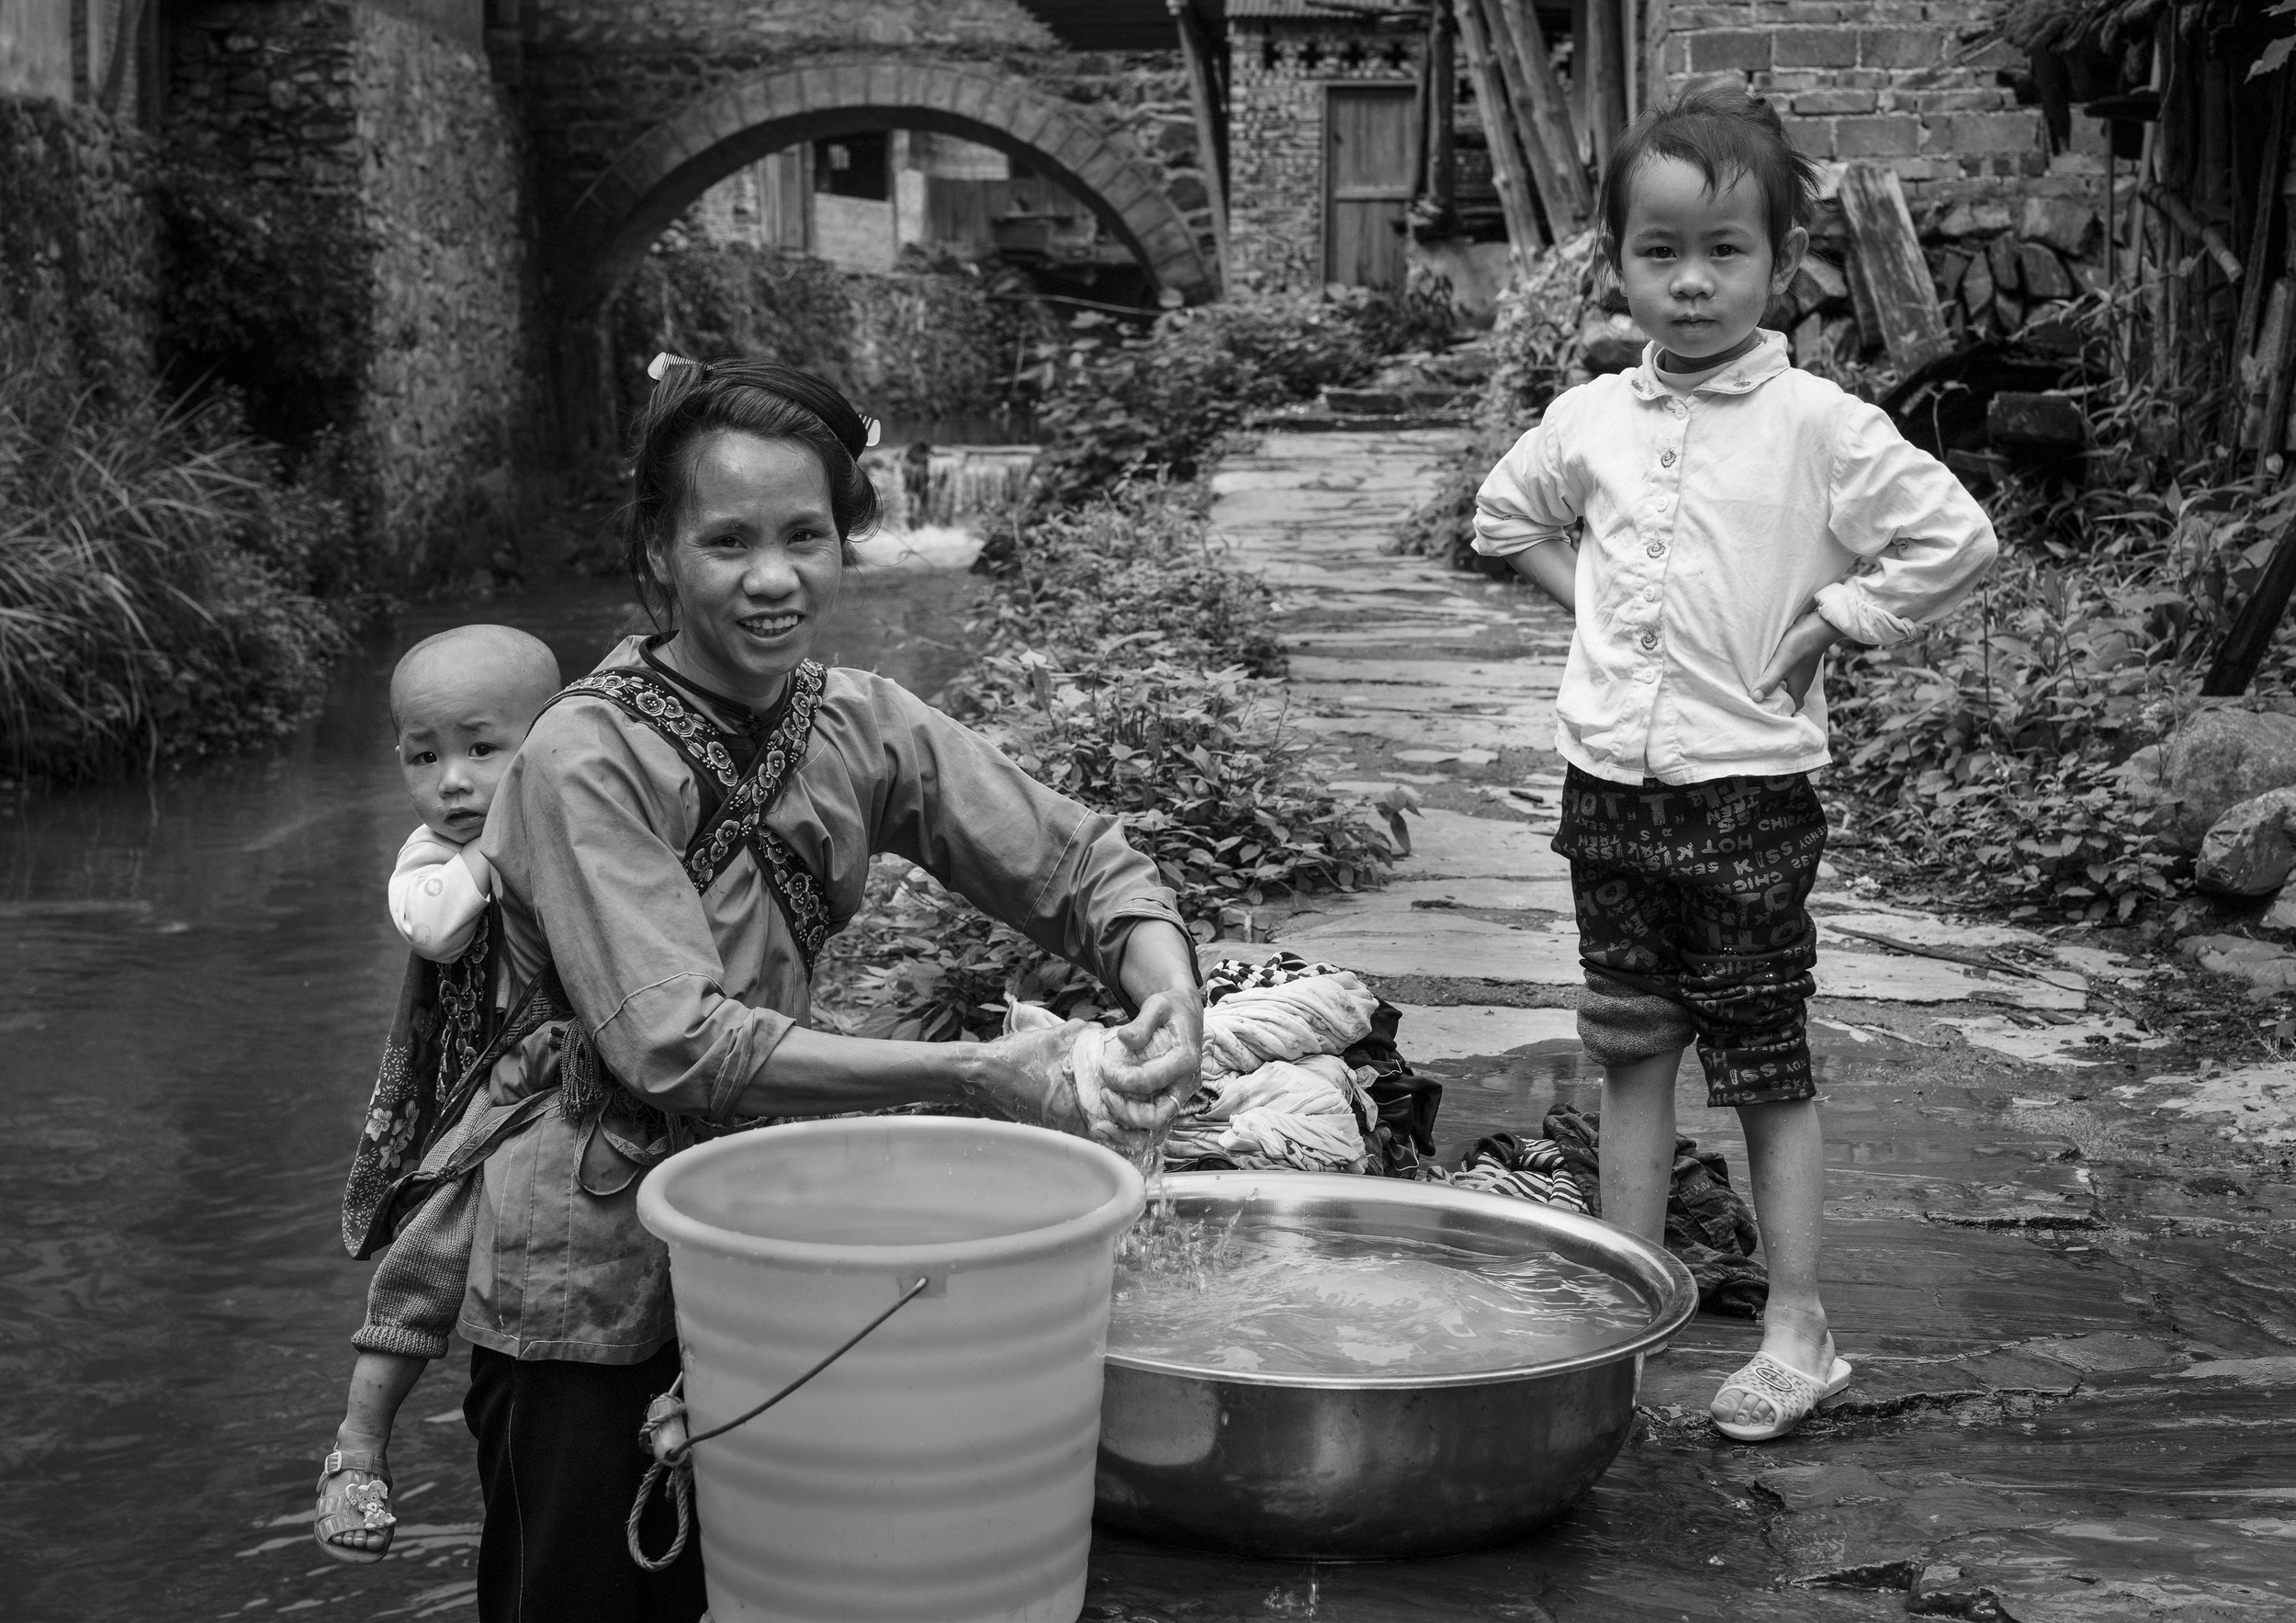 Yan aged 30 washes the families clothing in the stream near her home